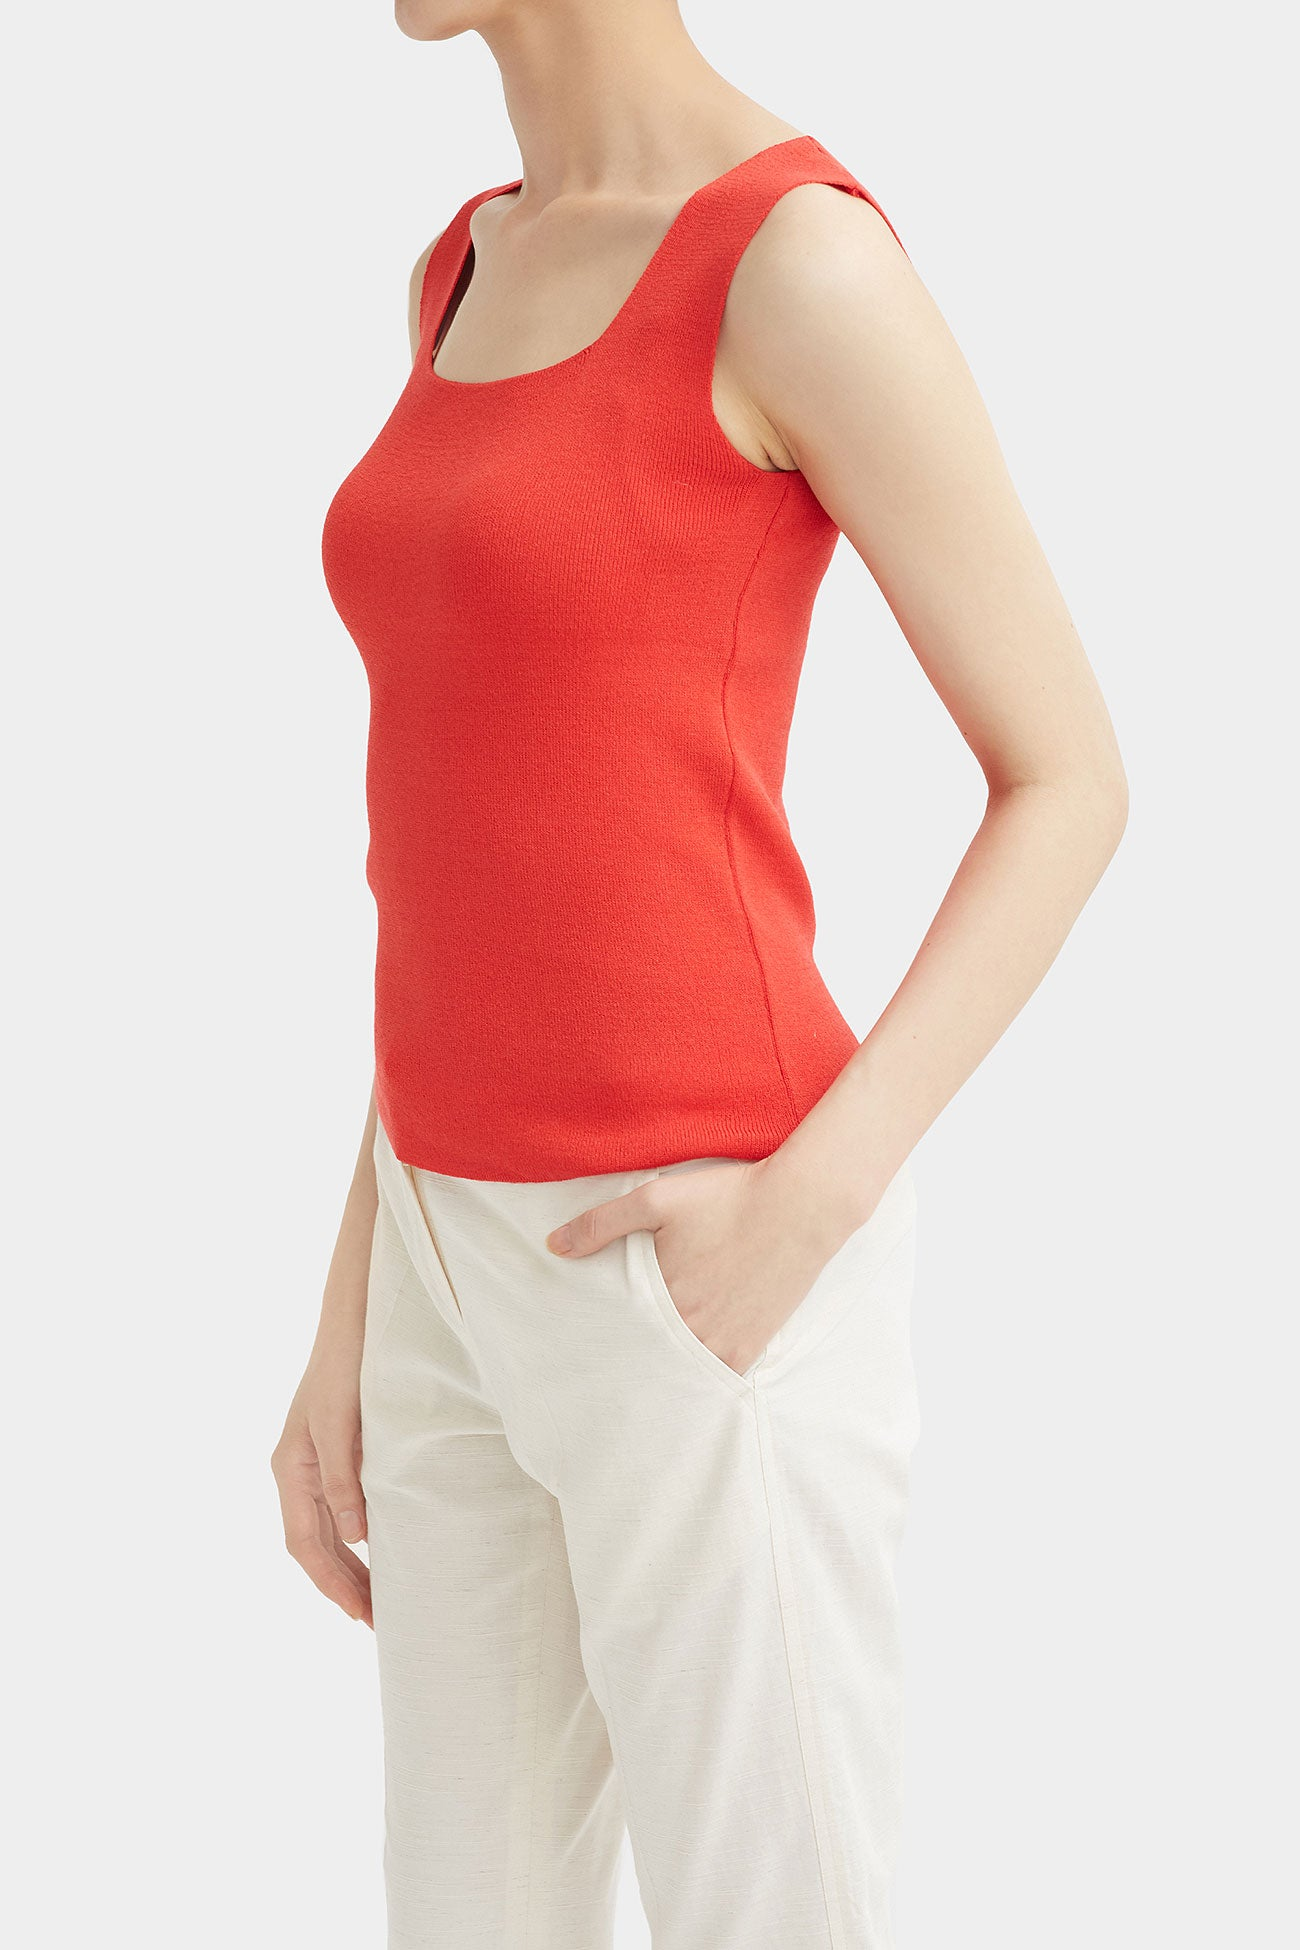 PASSION NOI SLEEVELESS KNIT